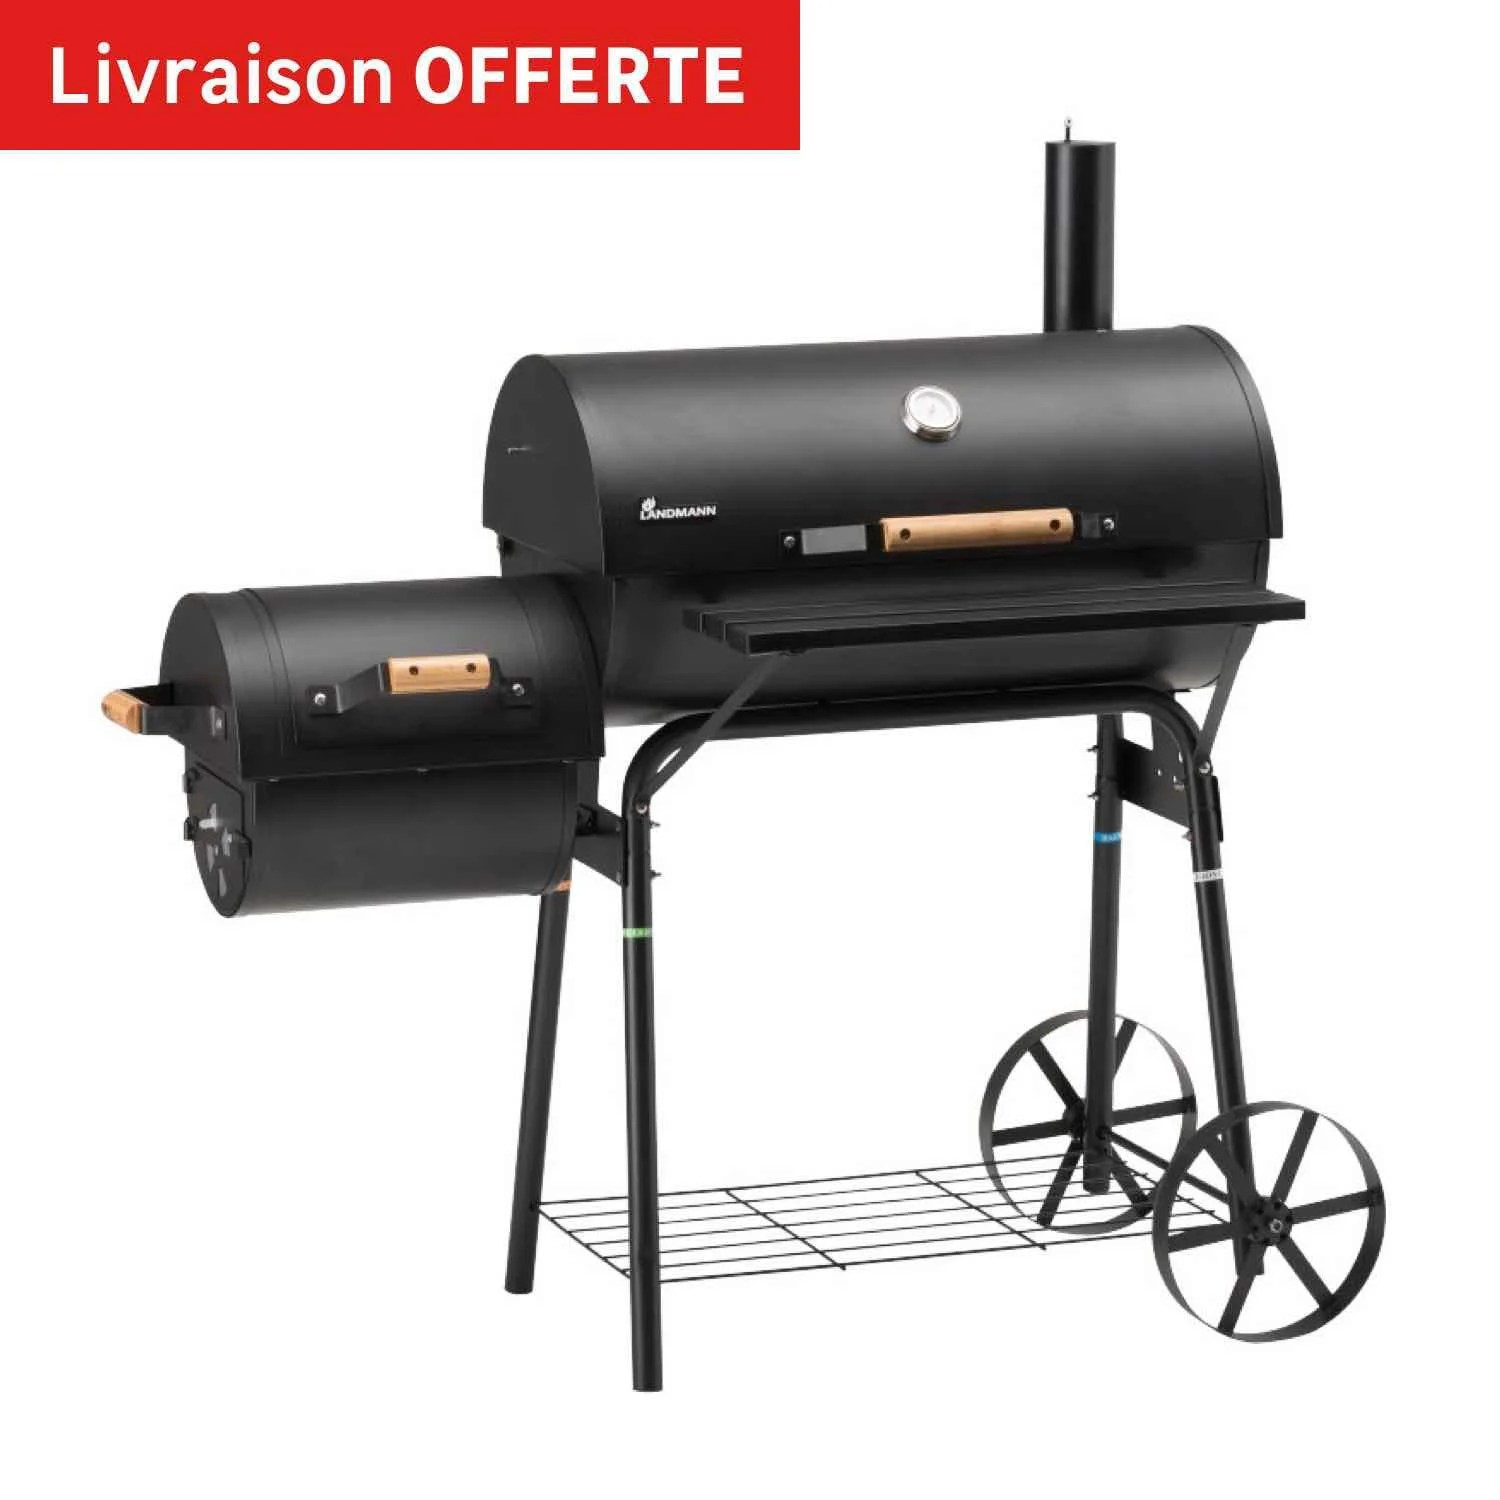 Abri Barbecue Neiba Leroy Merlin Barbecue Best Cool Barbecue Gaz Plancha